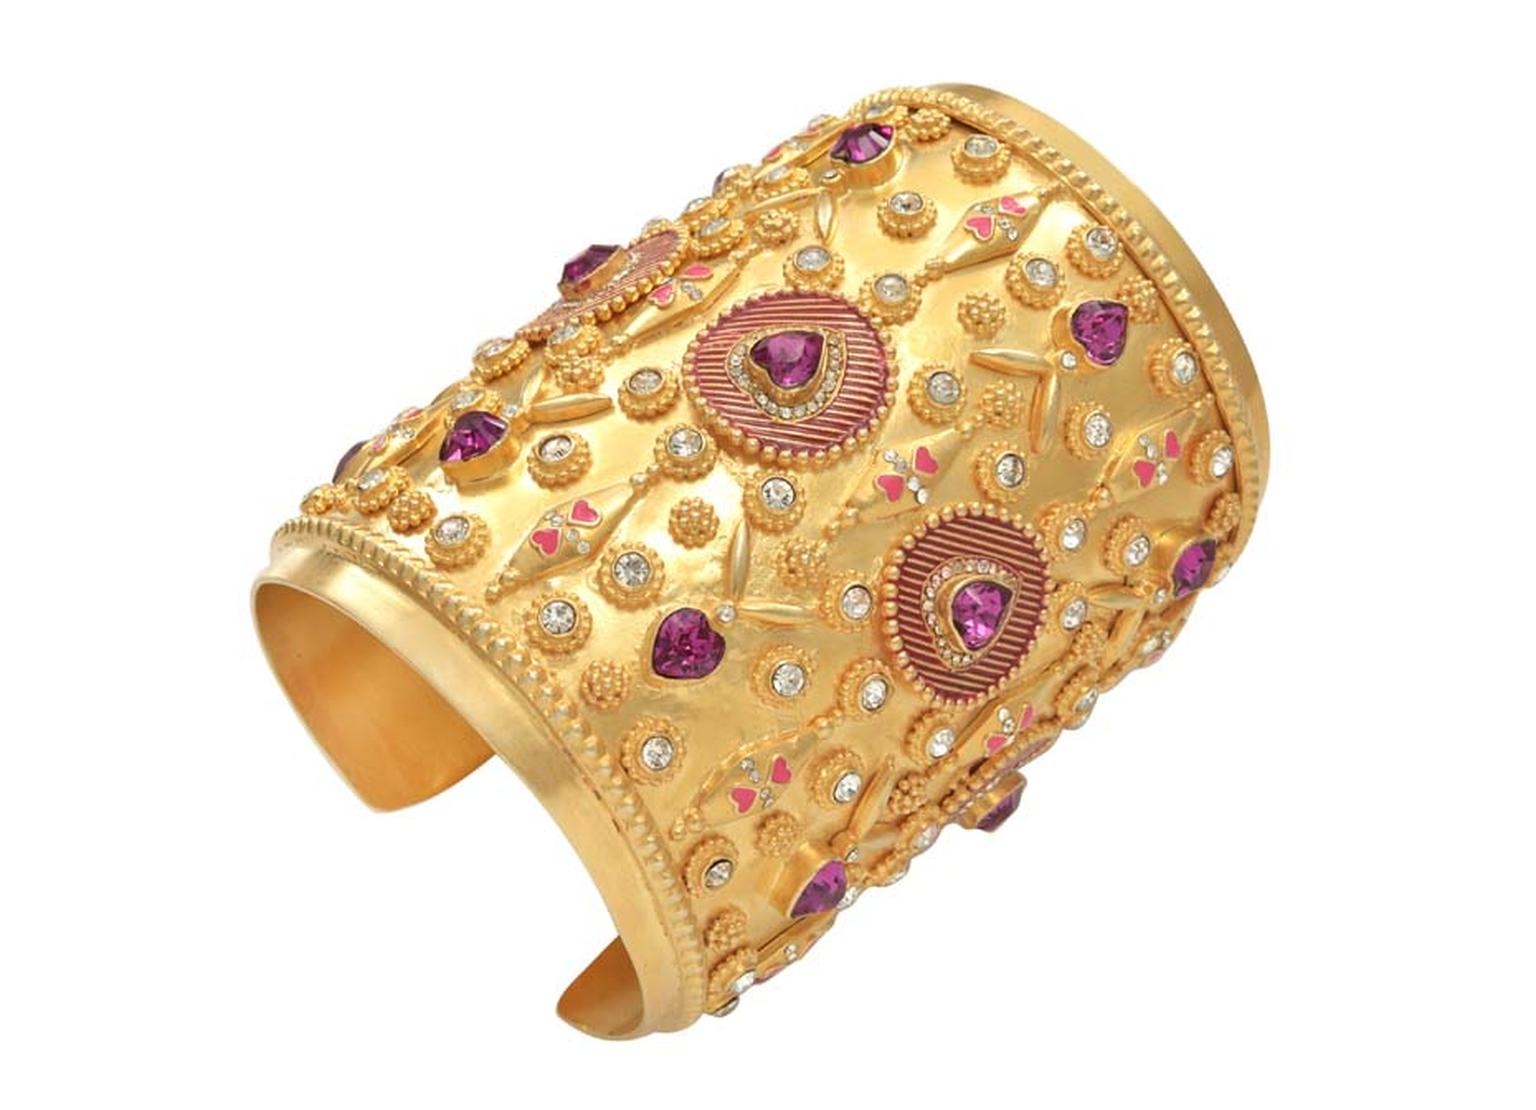 Manish Arora and Amrapali's Bola cuff from their latest AW 2014-15 collection.